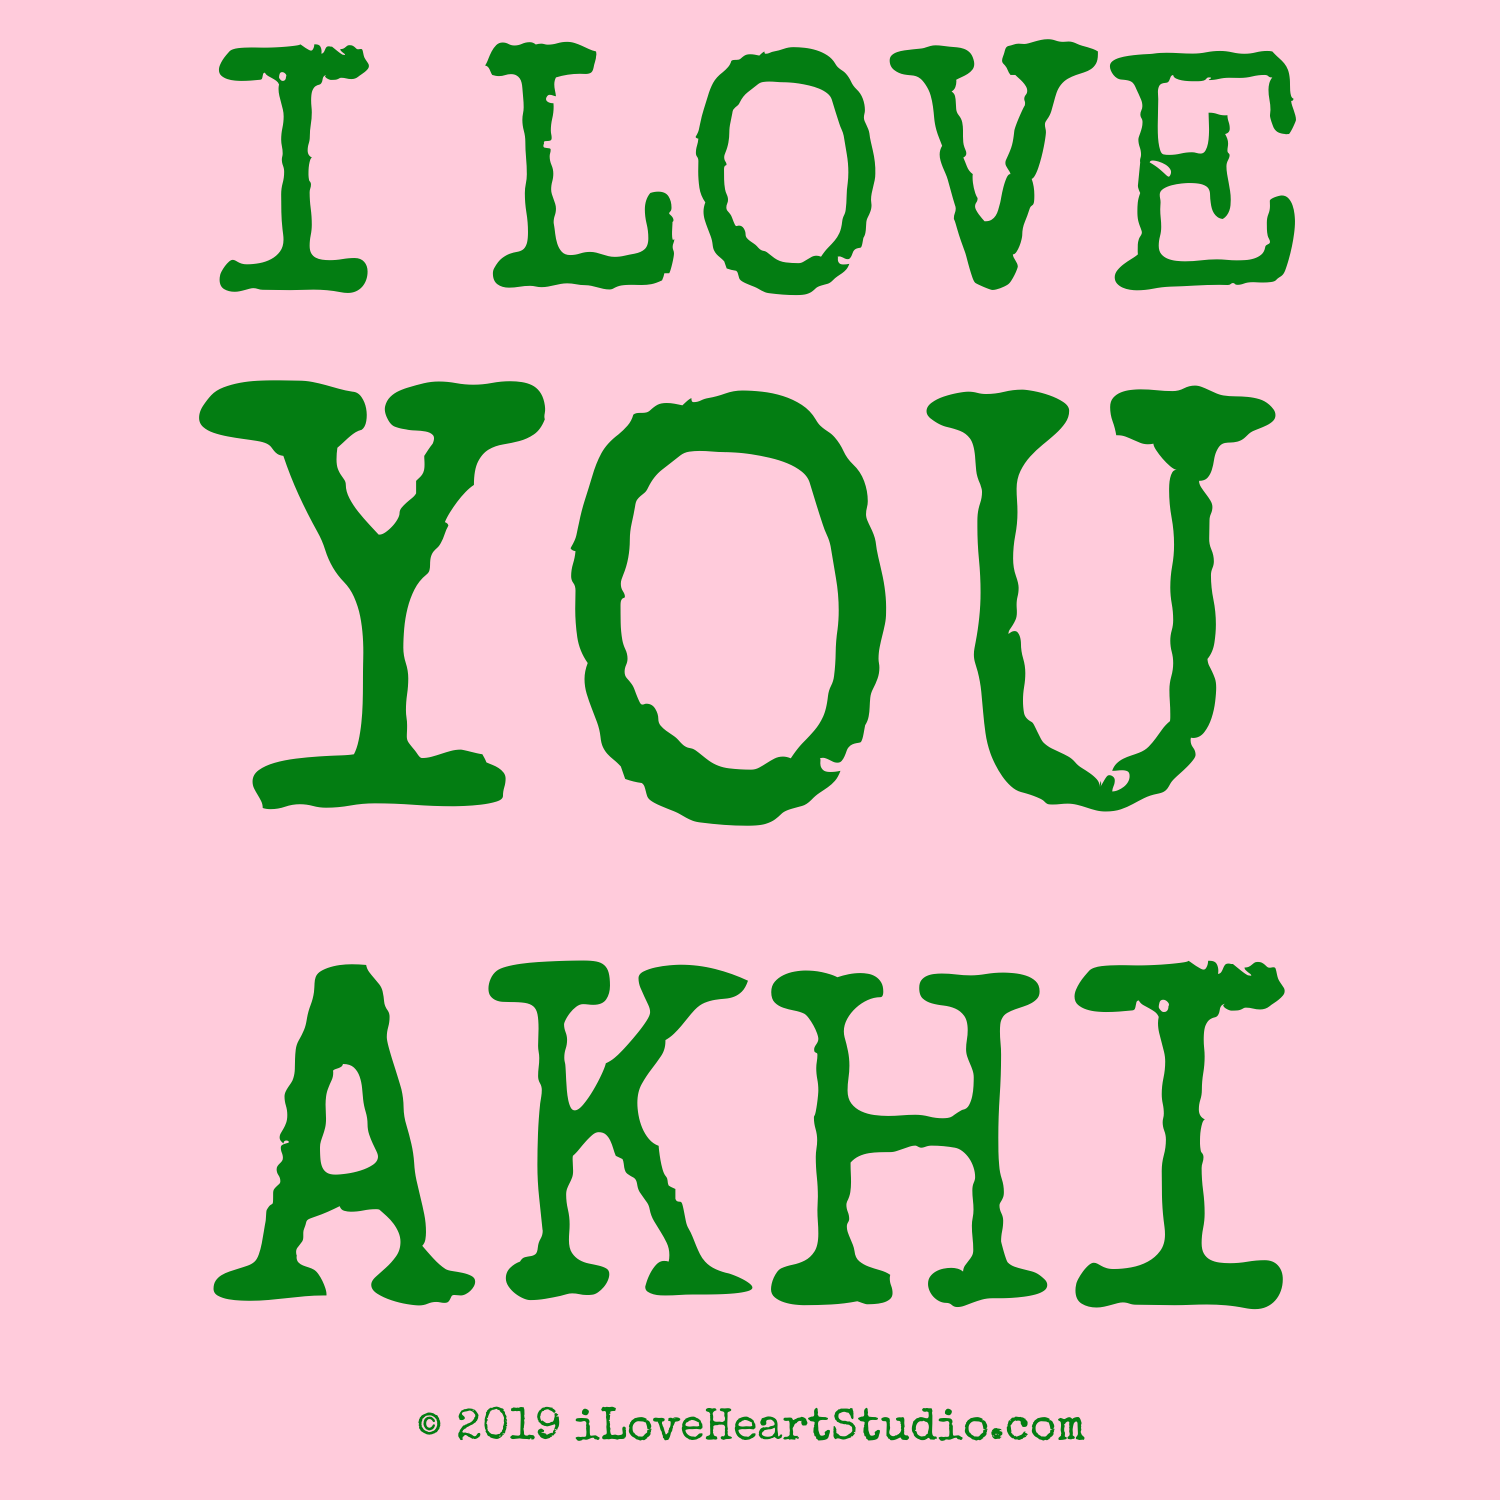 i love you akhi design on t shirt poster mug and many other